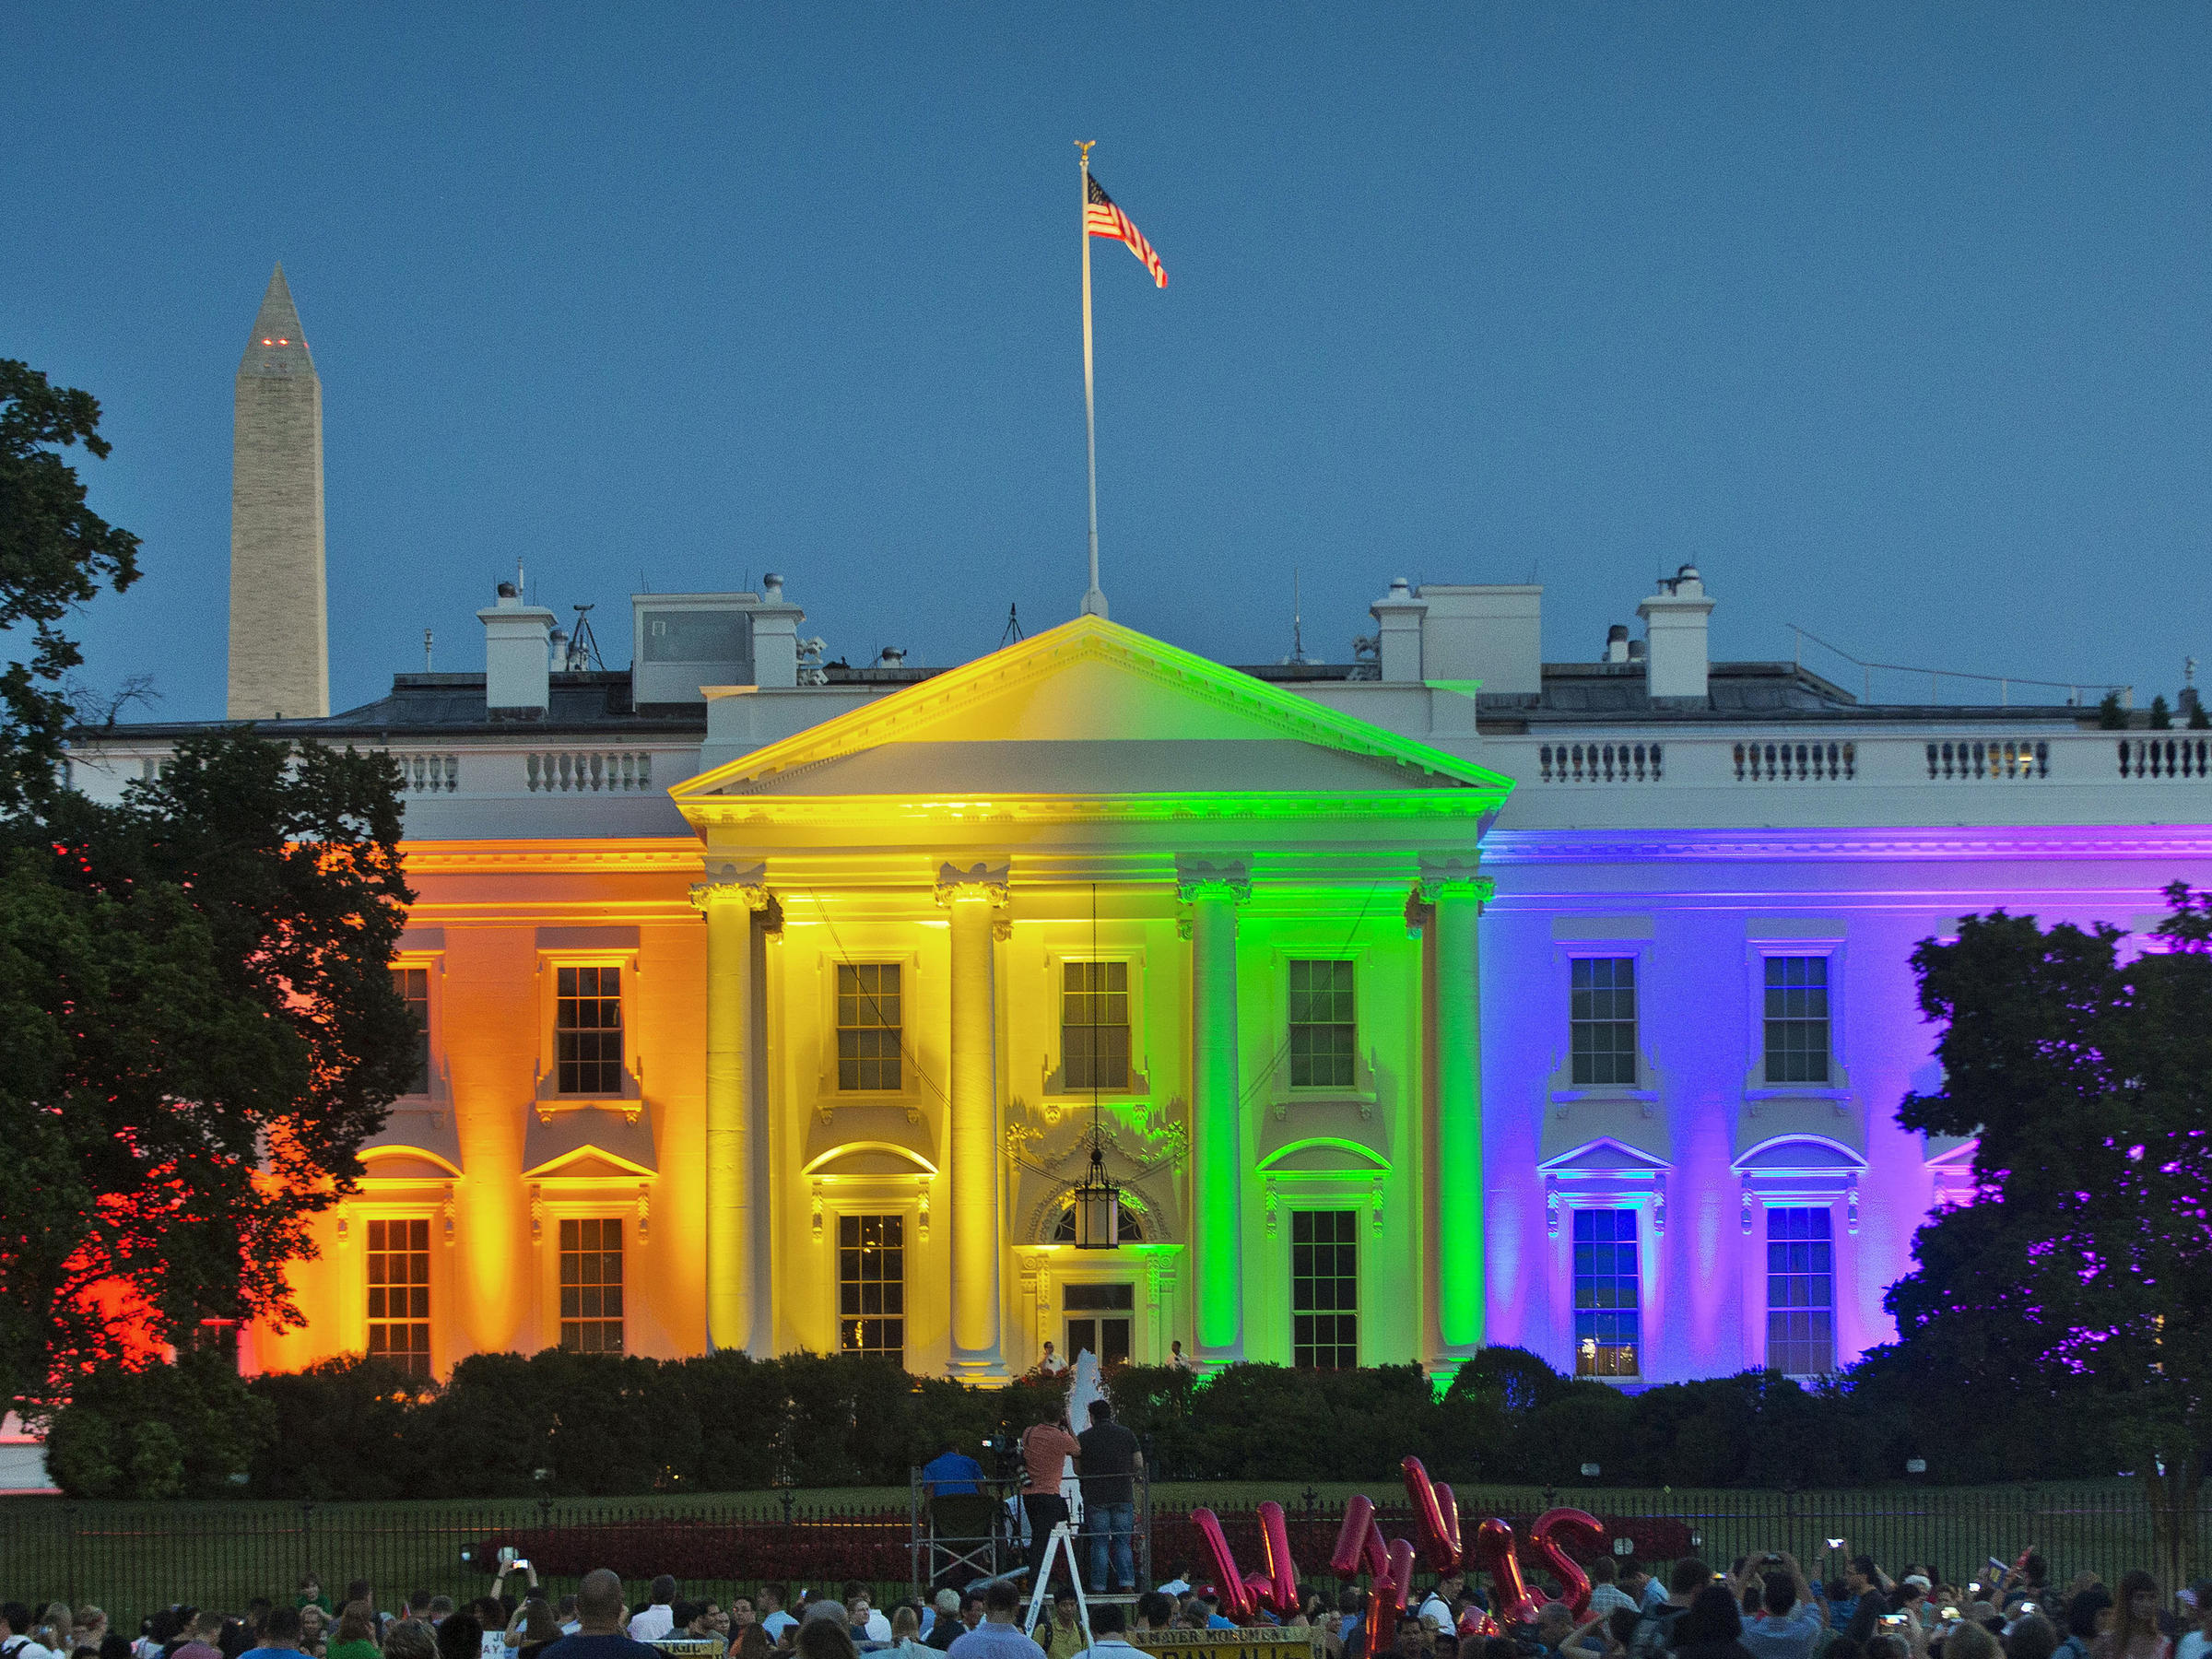 In celebrating the 2015 Supreme Court's ruling to legalize same-sex marriage the White House lit-up with the iconic color scheme of Baker's flag